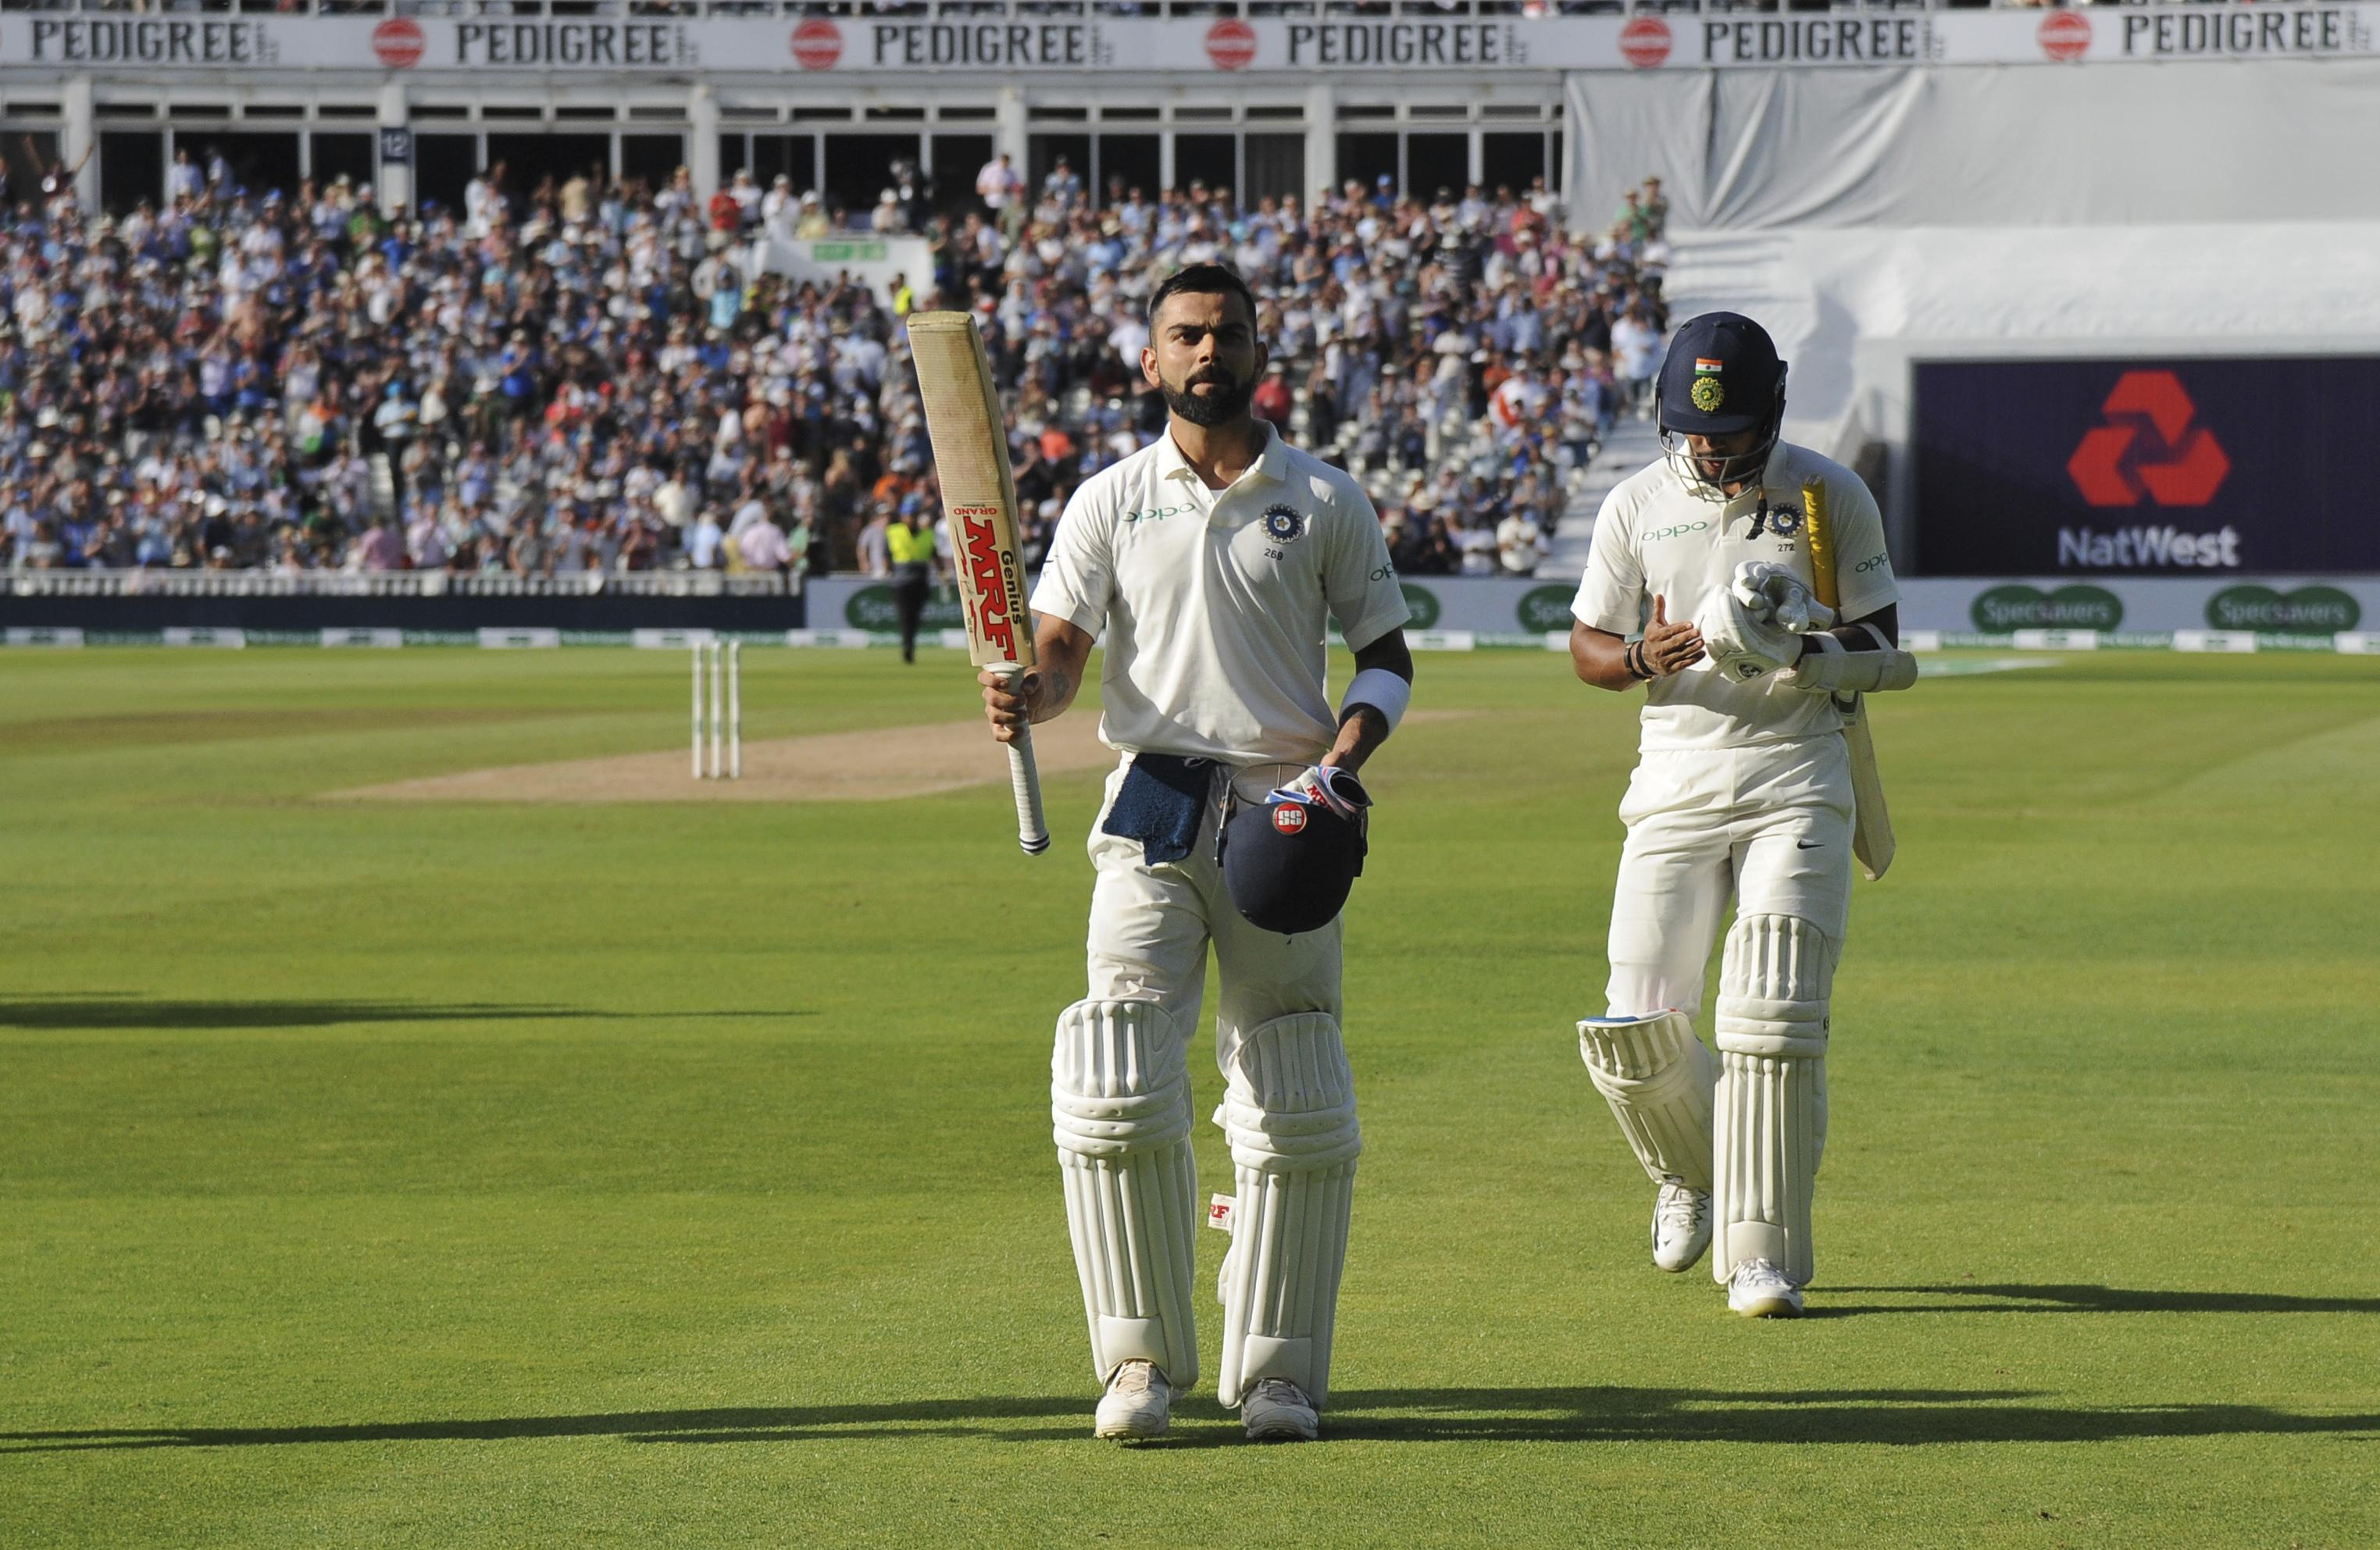 Virat Kohli left the field to a standing ovation after his 149